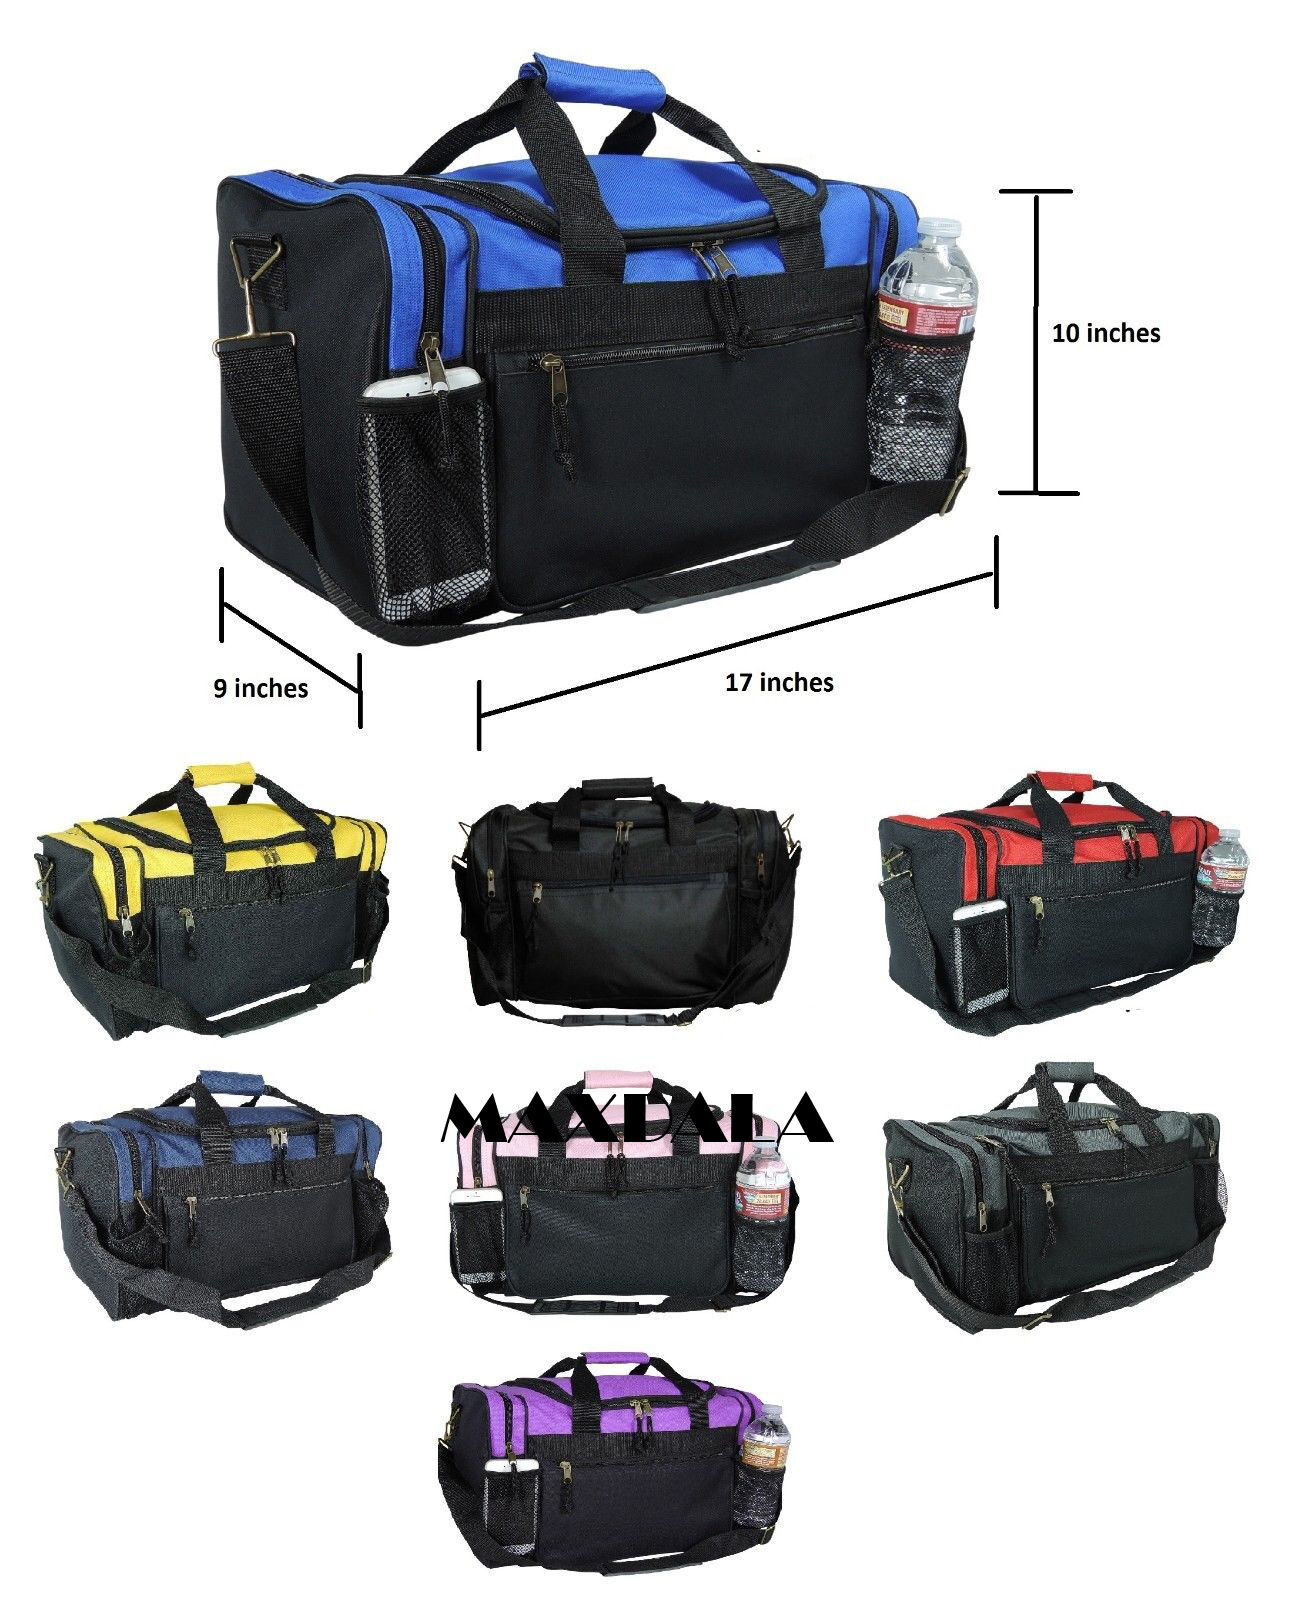 GLORY ART Adjustable Luggage Strap TSA Approved Lock Heavy Duty Suitcase Straps Travel Belts Accessories 1-Pc Burrito